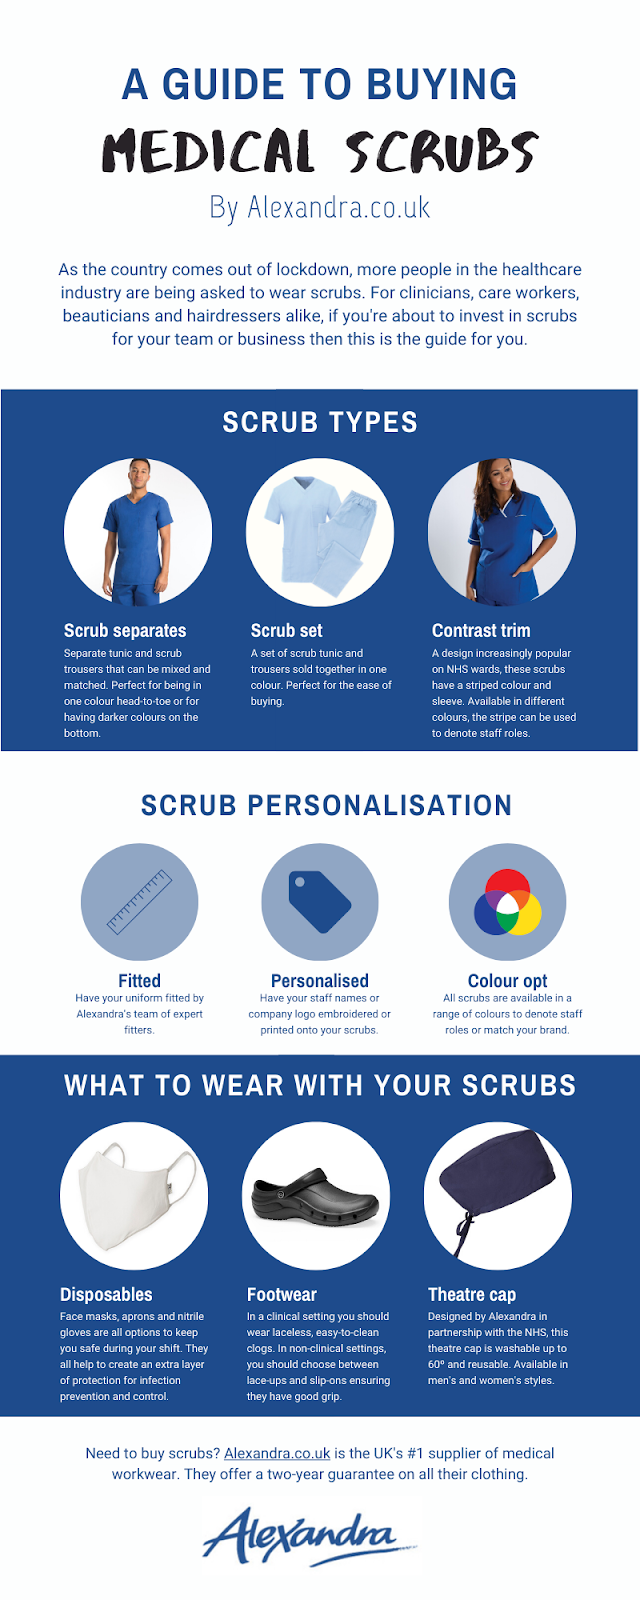 An infographic guide to buying medical scrubs.